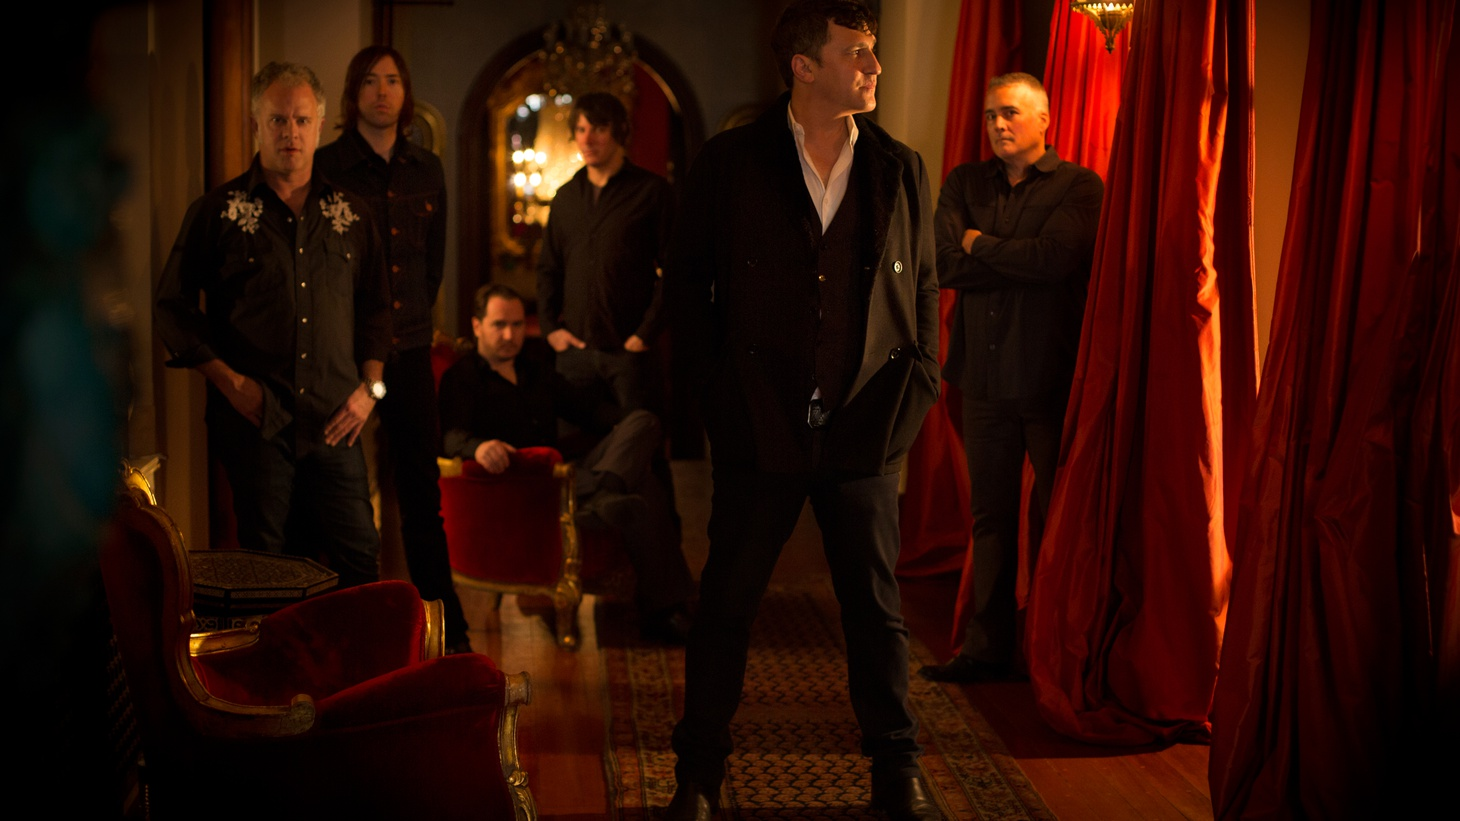 The Afghan Whigs reunited after a decade-long hiatus and played a set of soul-powered rock on Morning Becomes Eclectic.